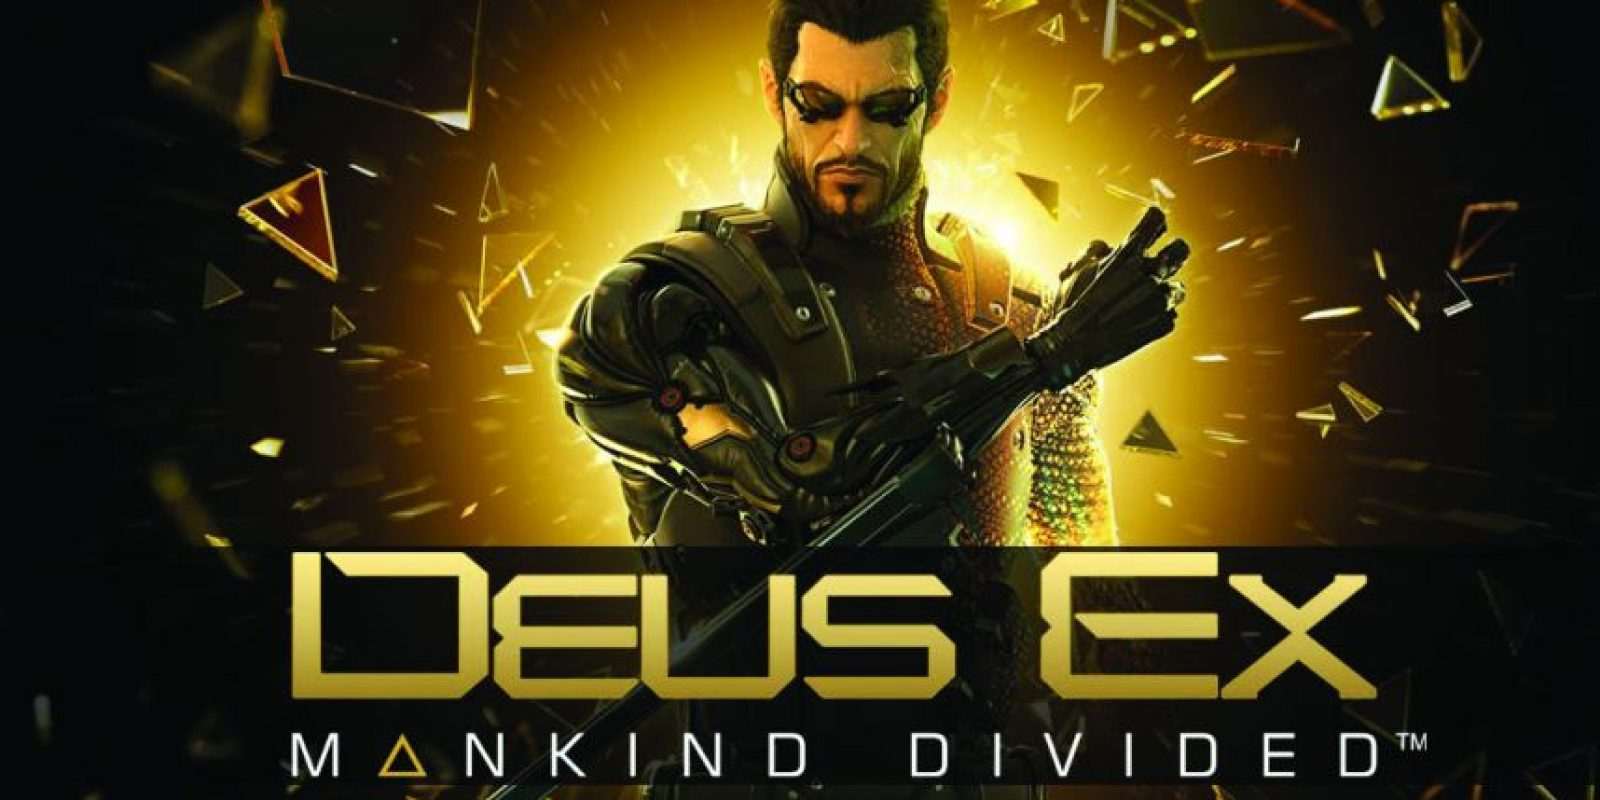 Deus Ex: Mankind Divided Foto: Square Enix